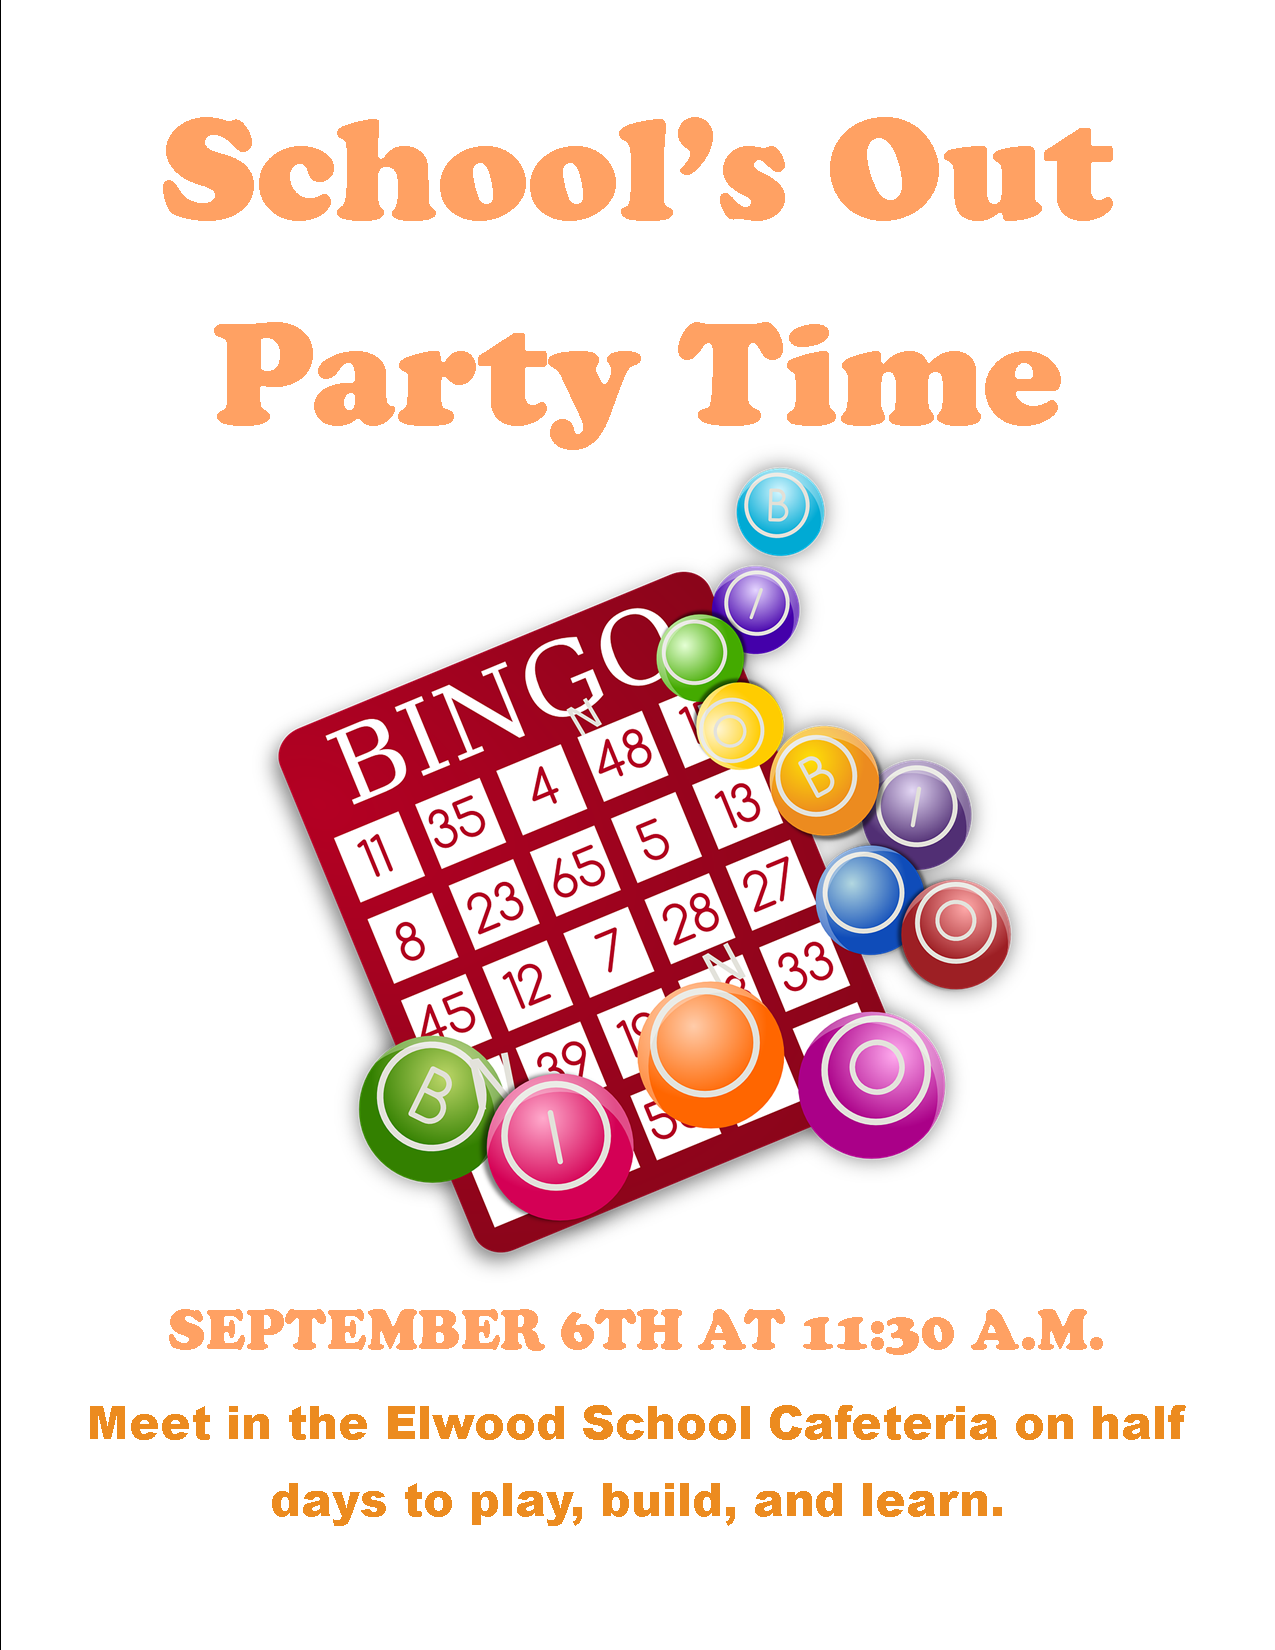 School's Out Party Time: Bingo